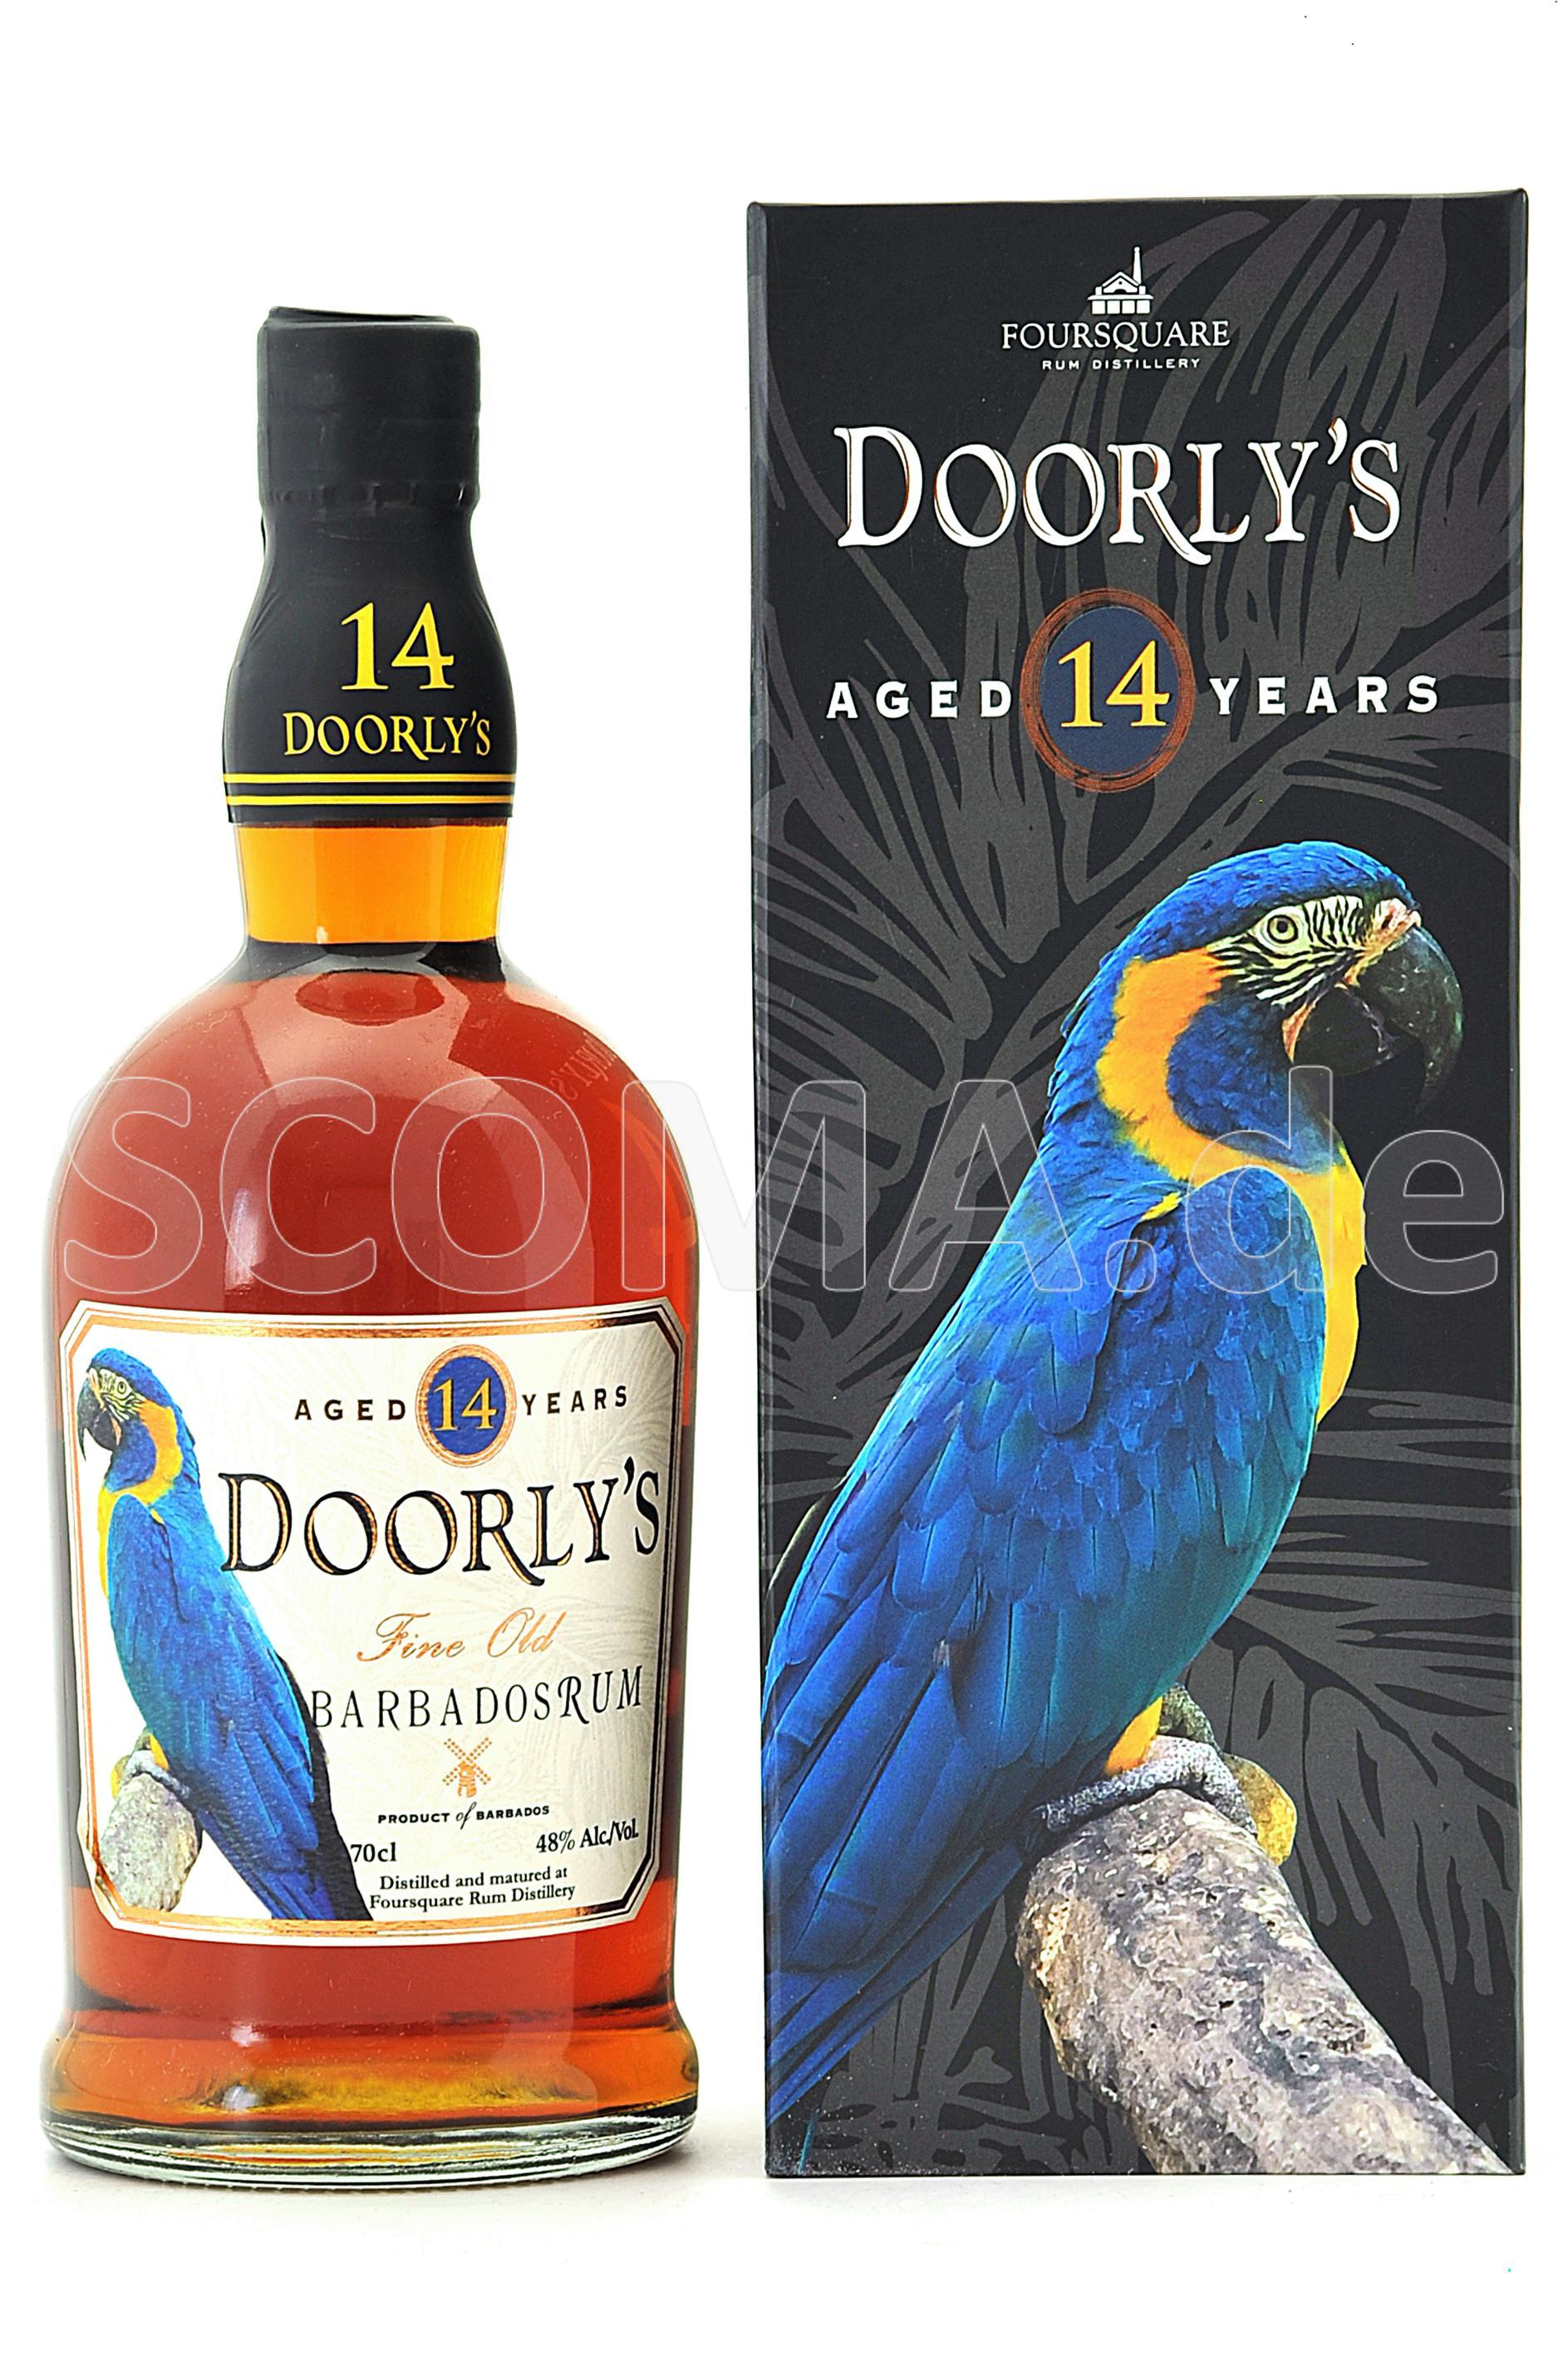 Doorly's Barbados Rum